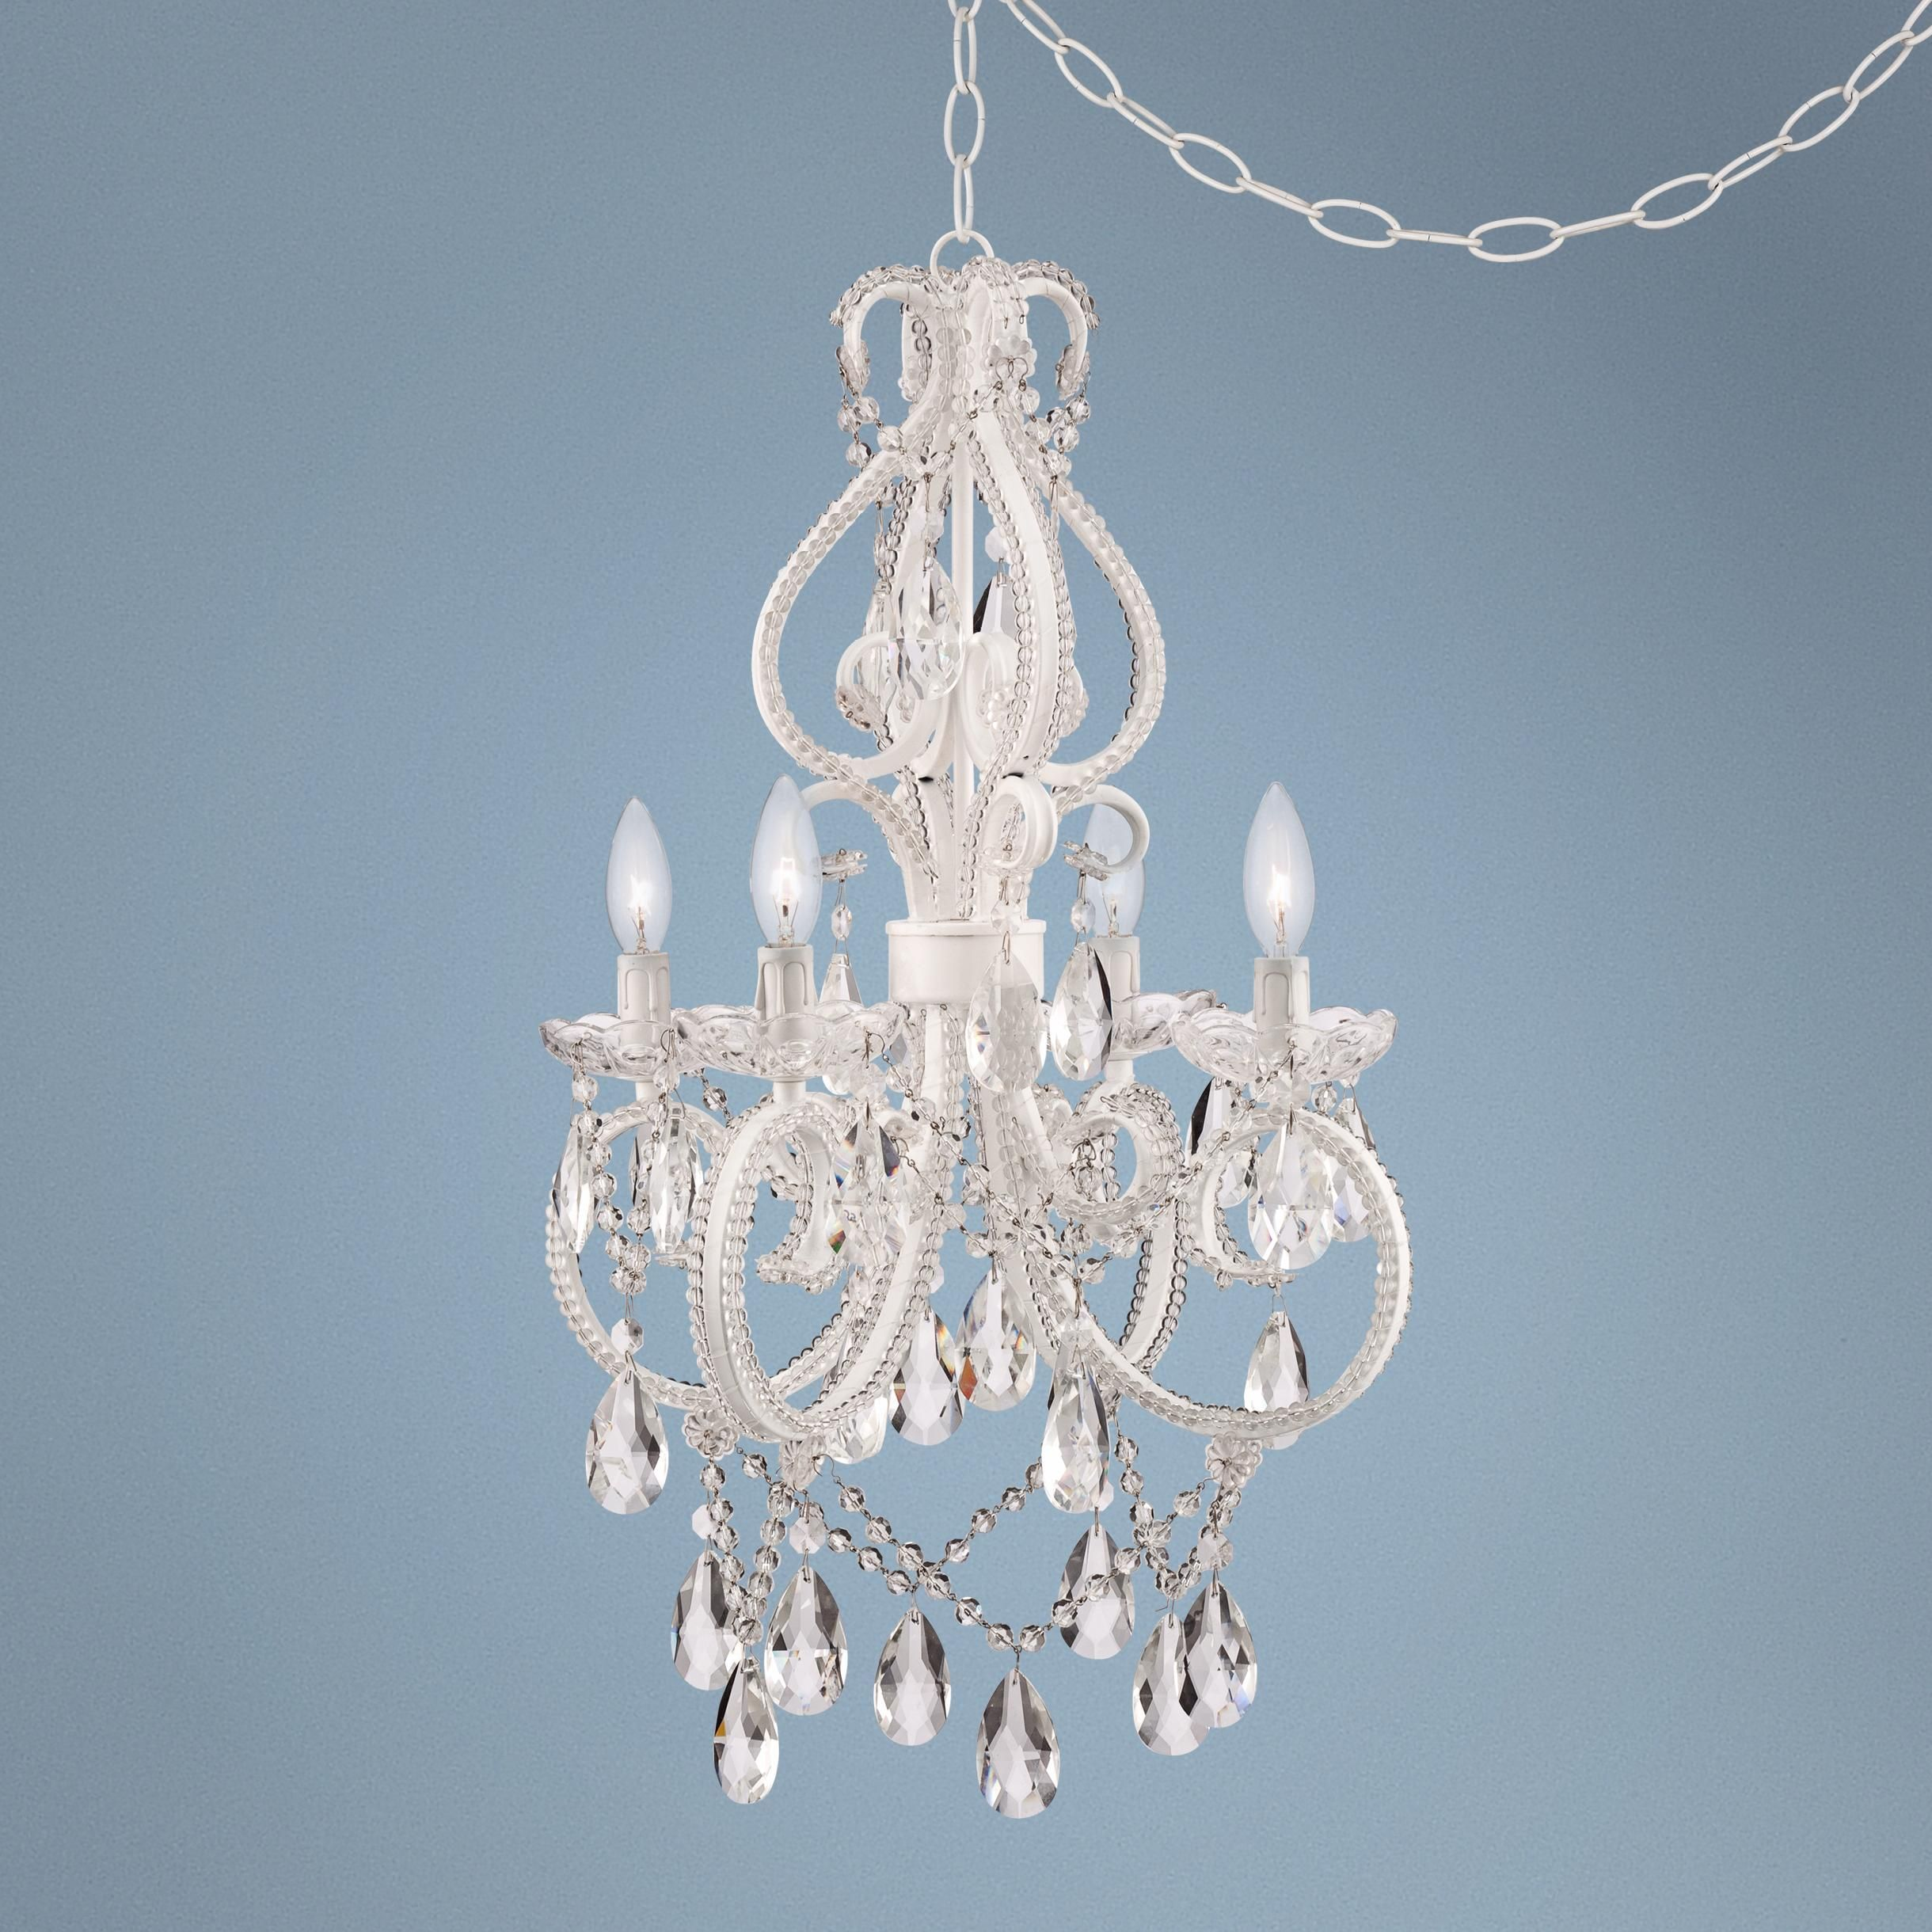 "Alderton White 16 1 2"" Wide Crystal Plug in Swag Chandelier"